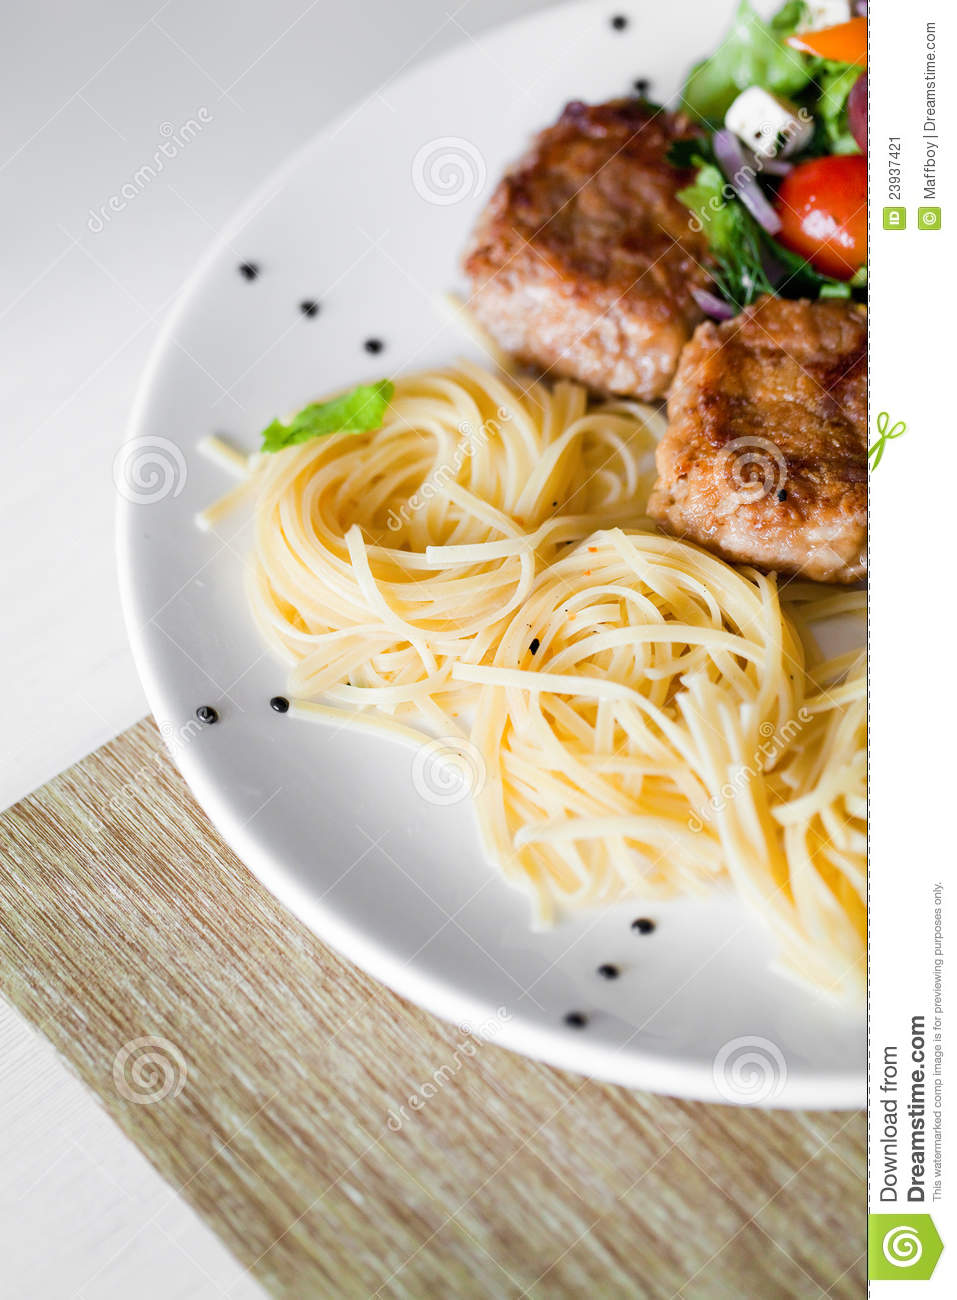 Cutlet and pasta